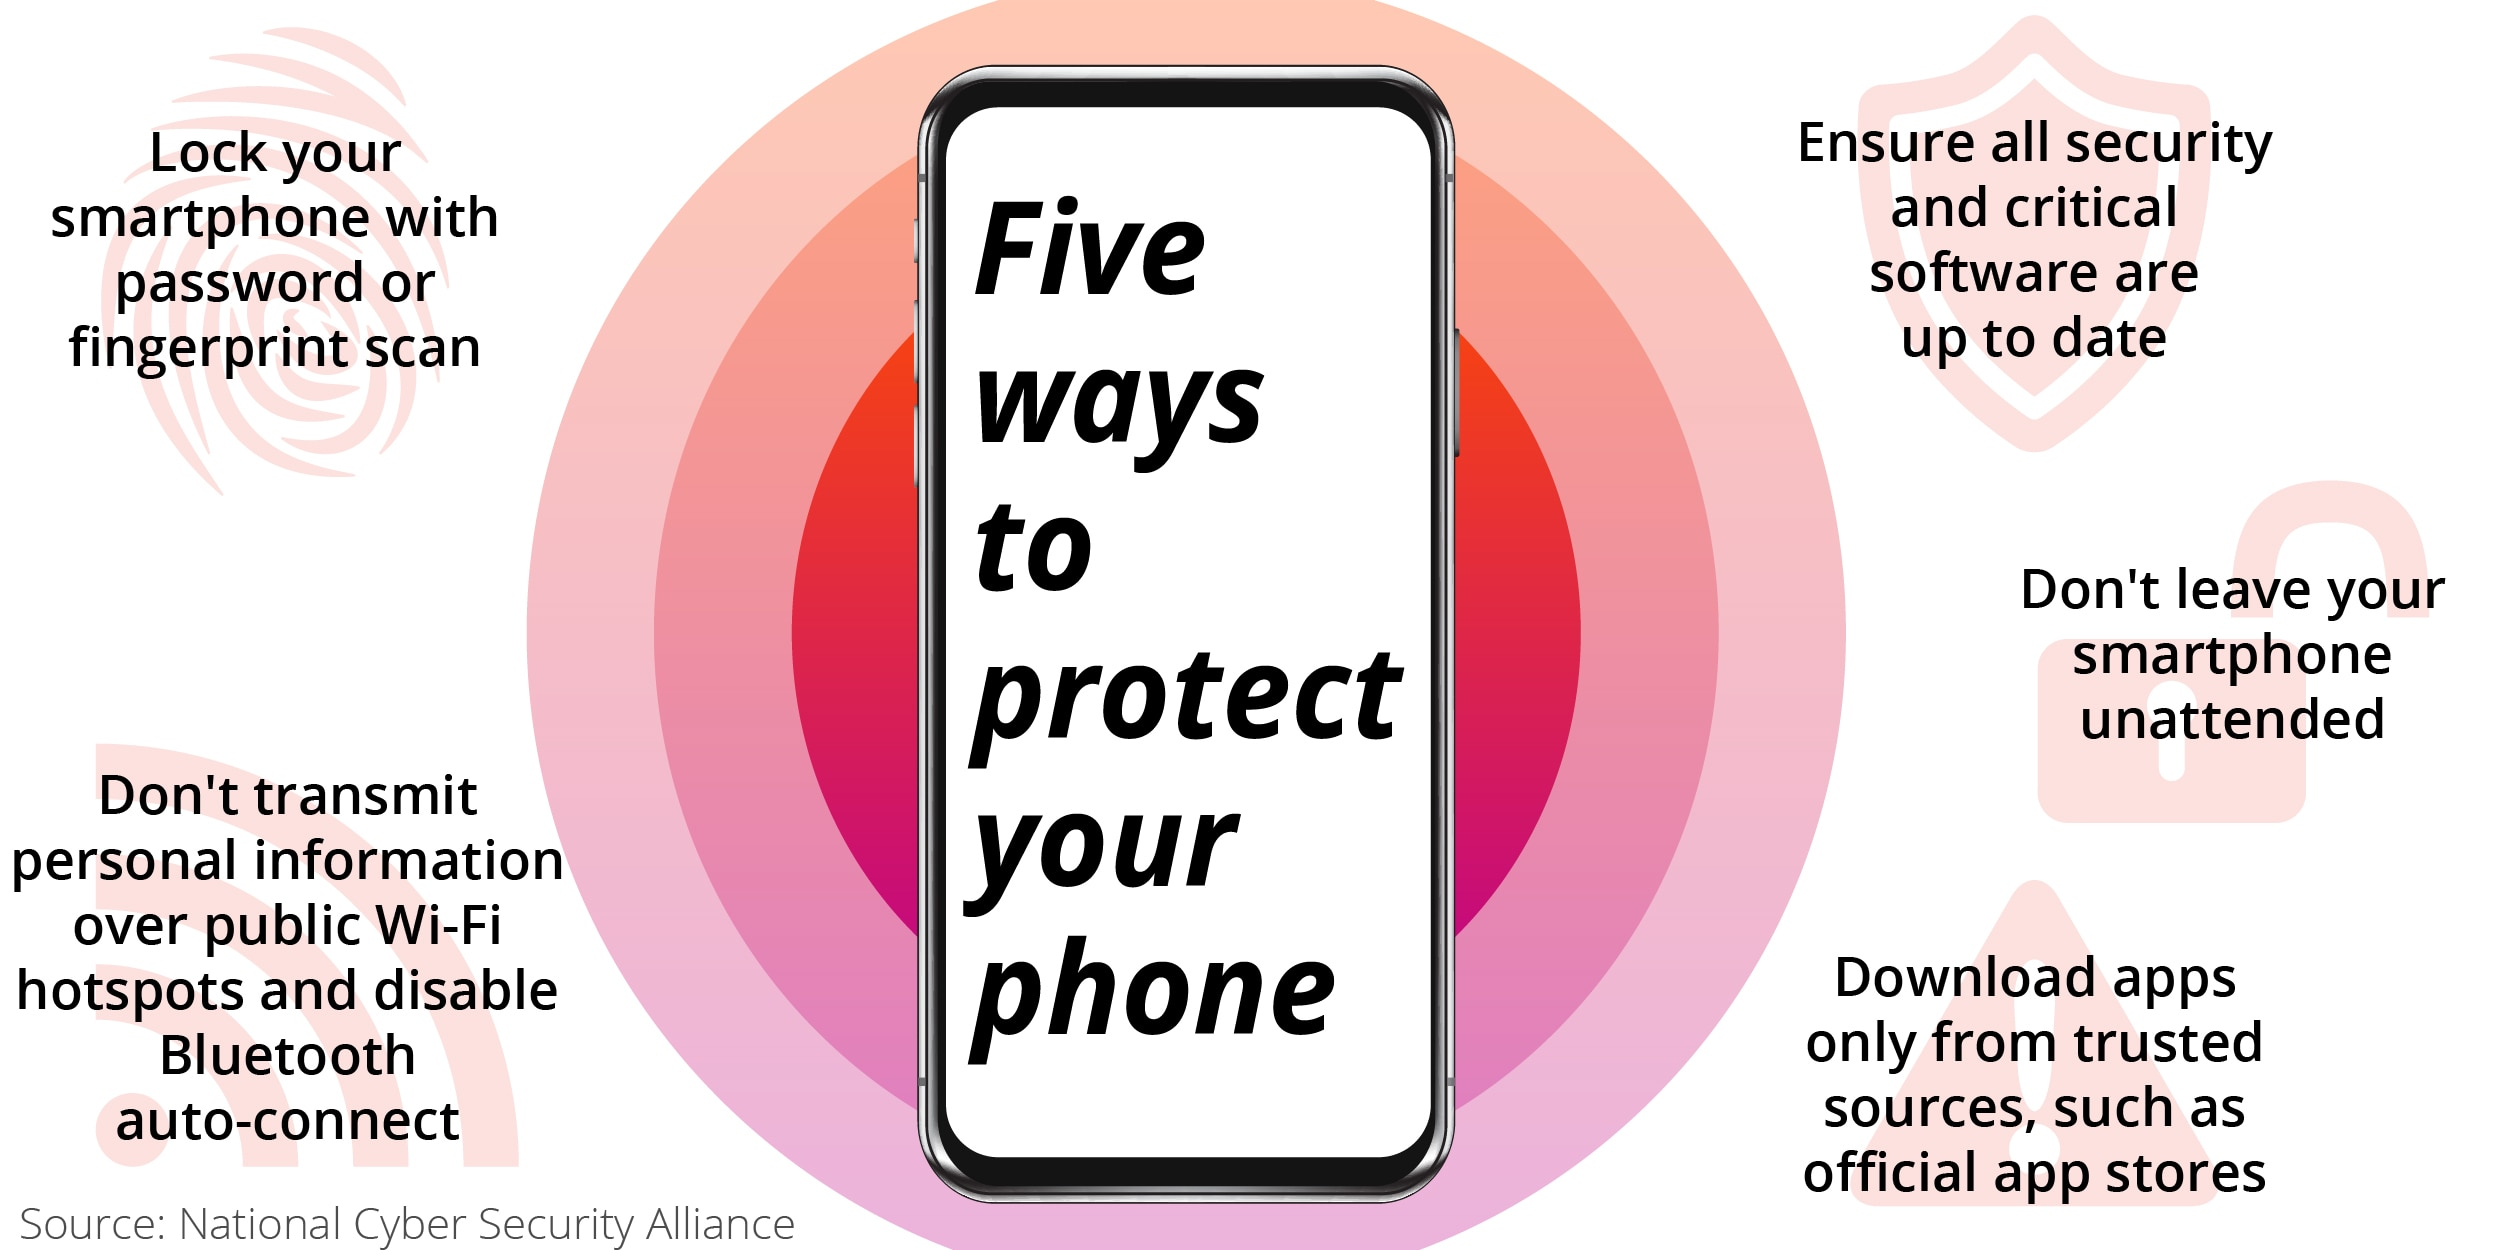 Graphic showing five ways to protect smartphone (State Dept./S. Gemeny Wilkinson)